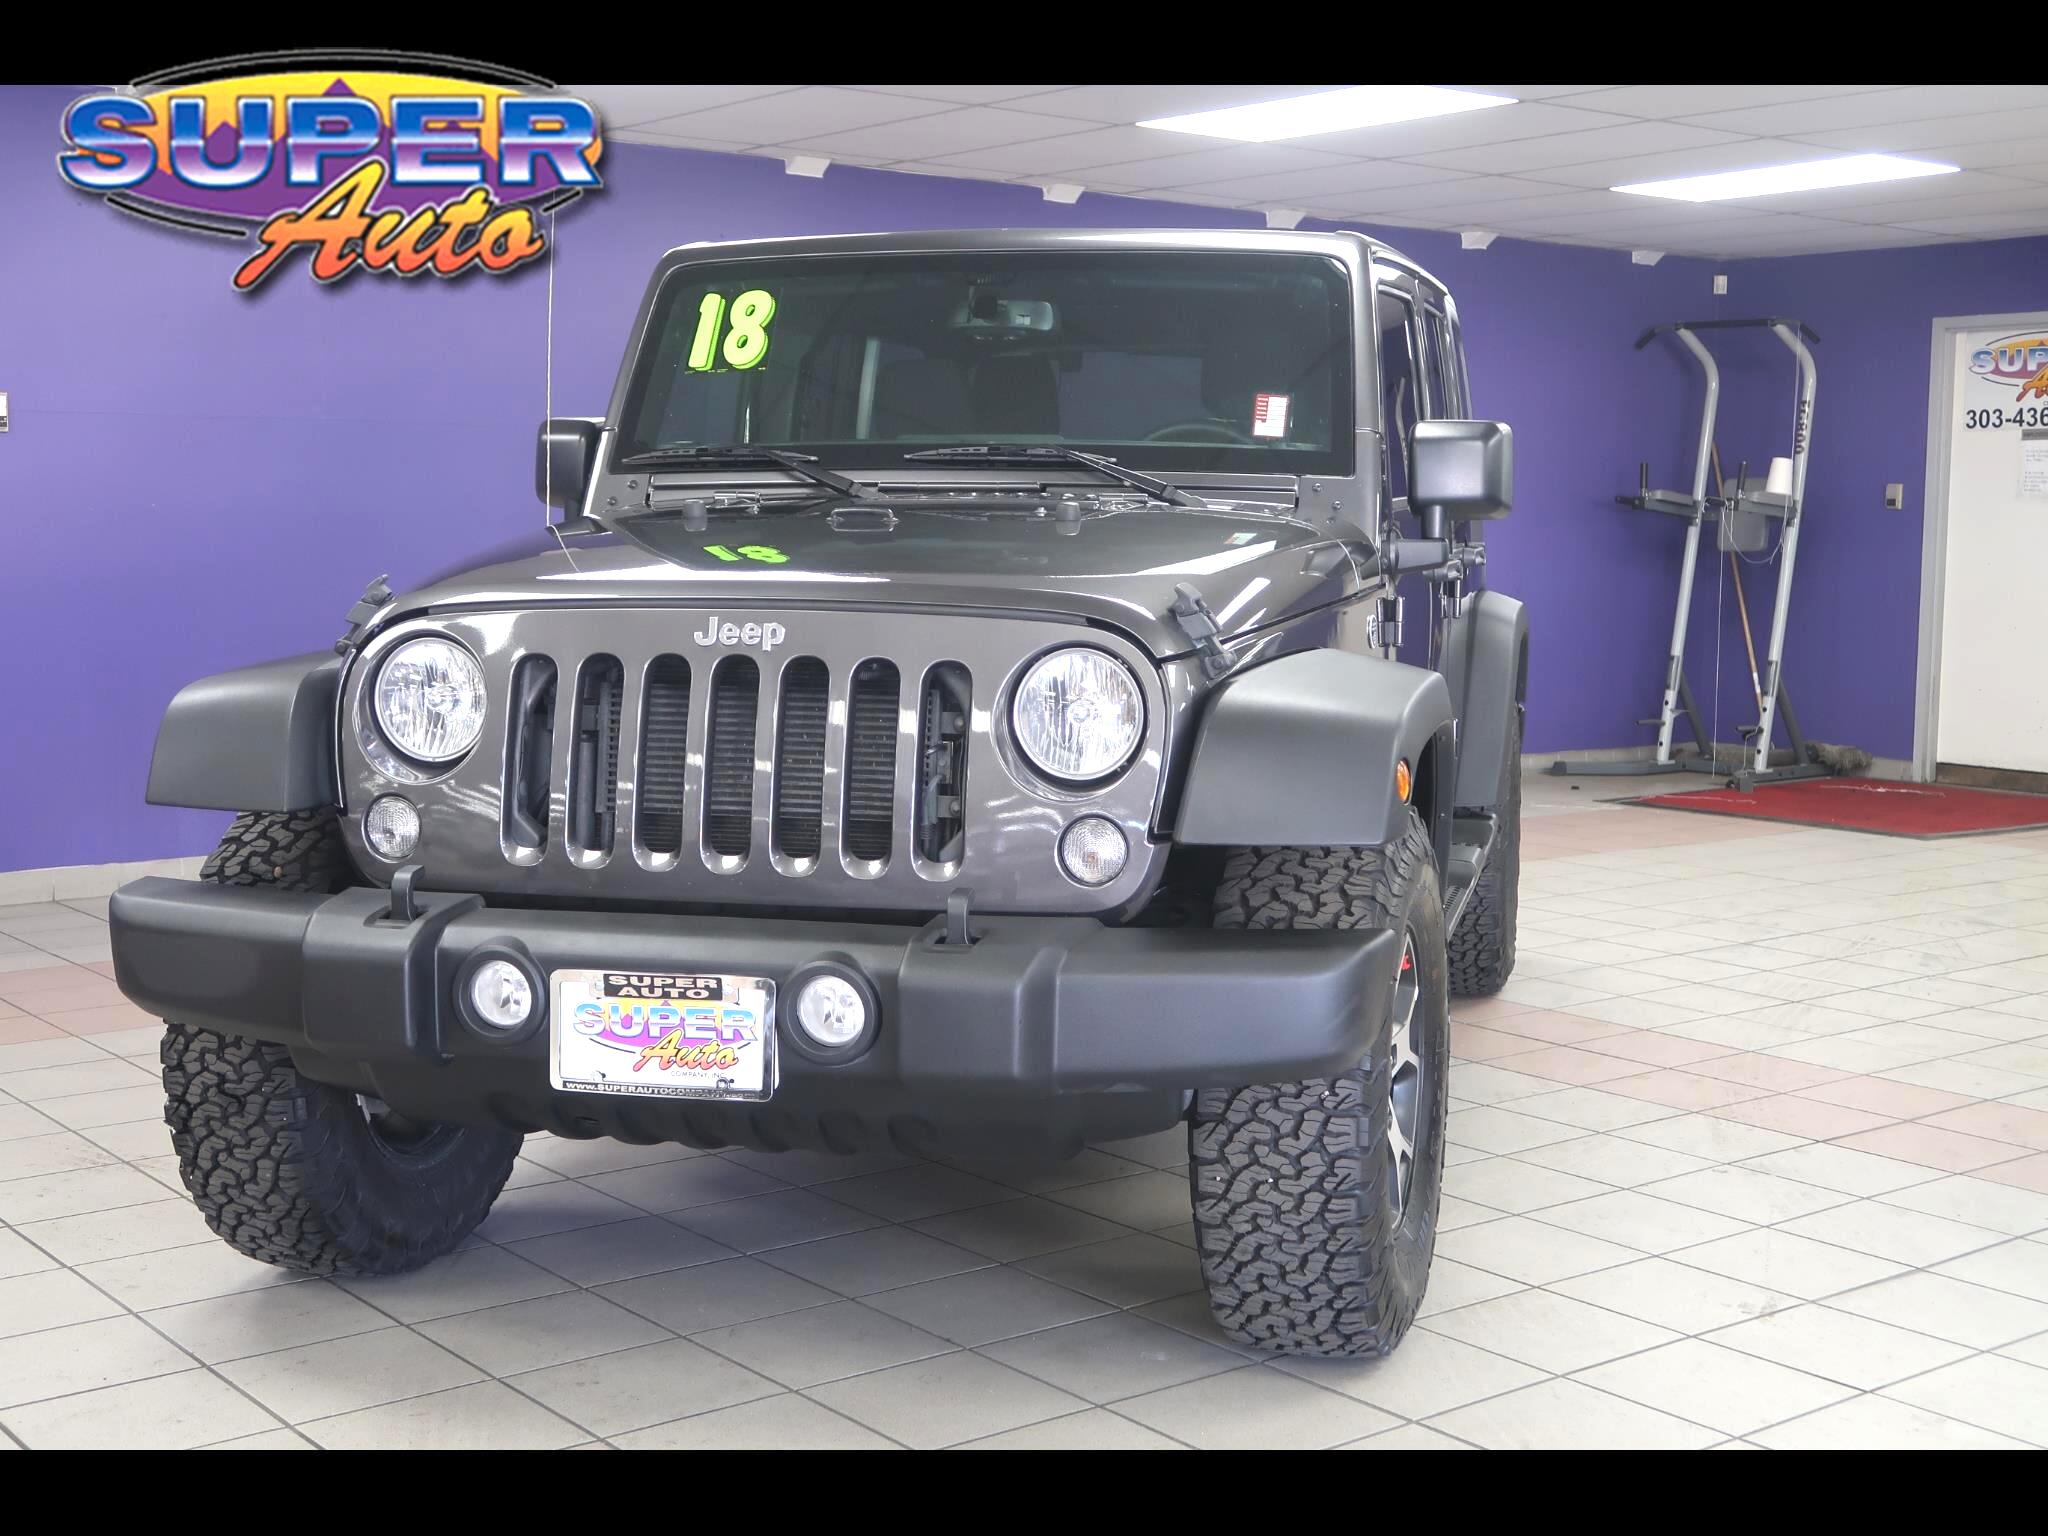 Jeep Wrangler JK Unlimited Sport S 4x4 2018